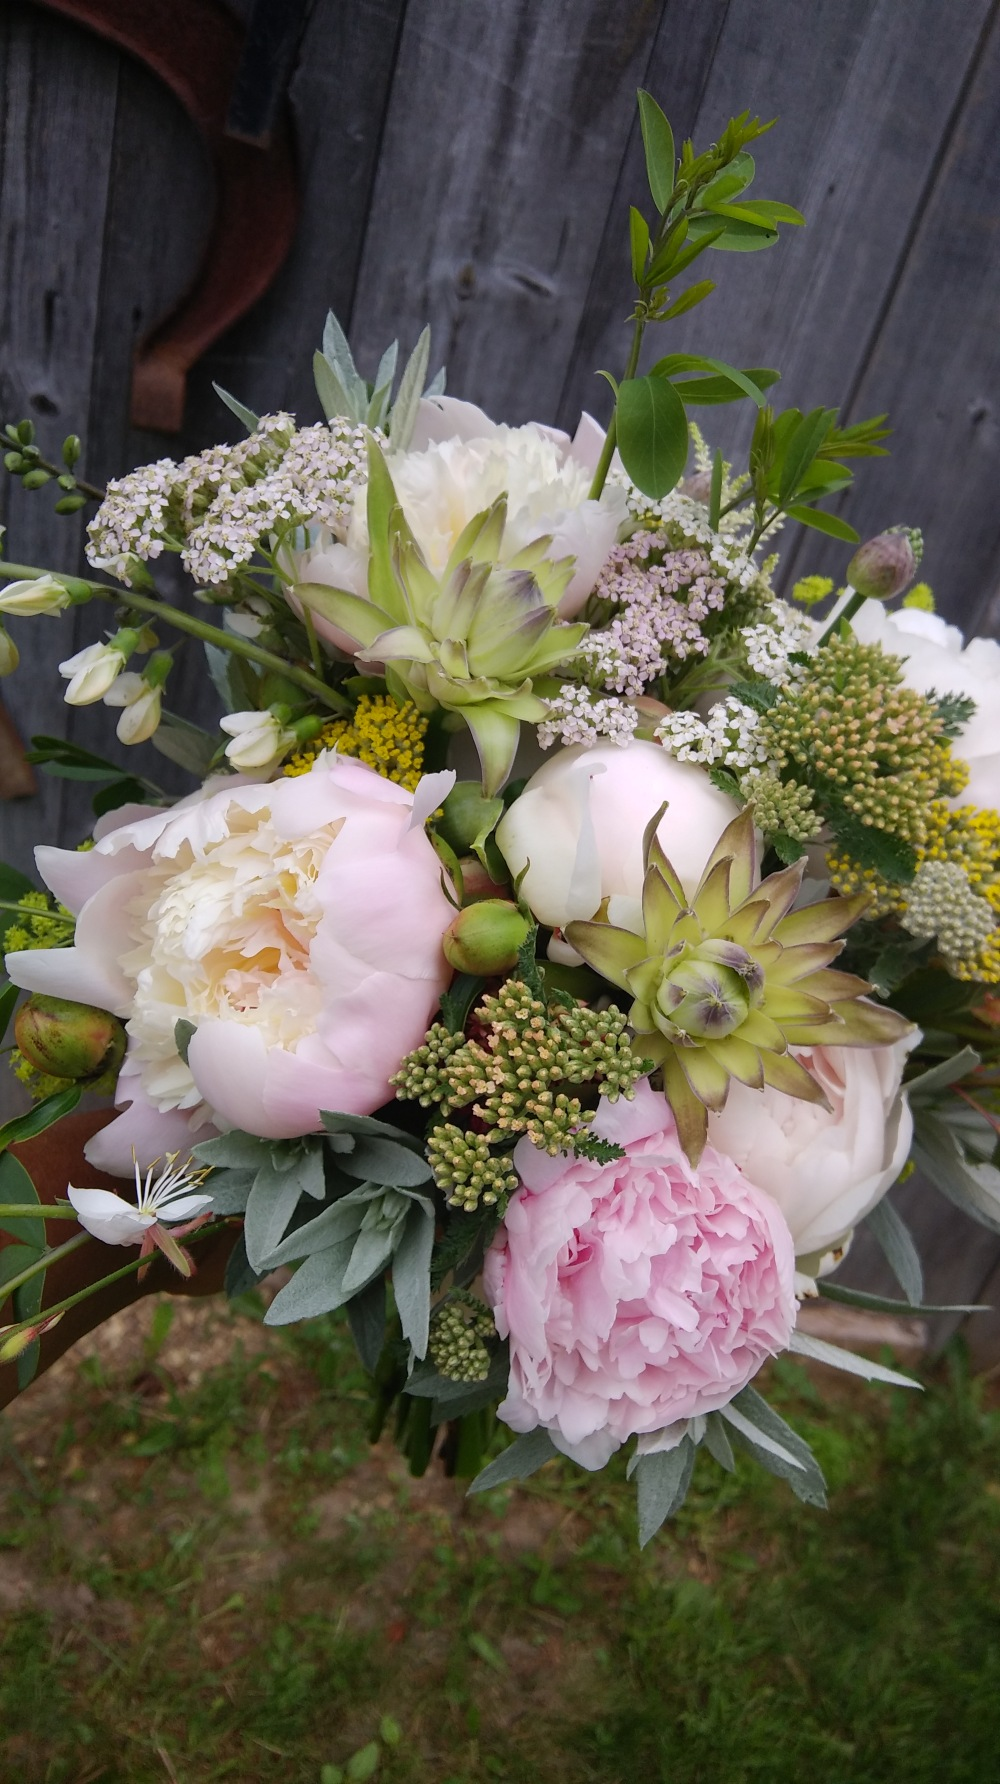 bridal bouquet for mary 6-15-18